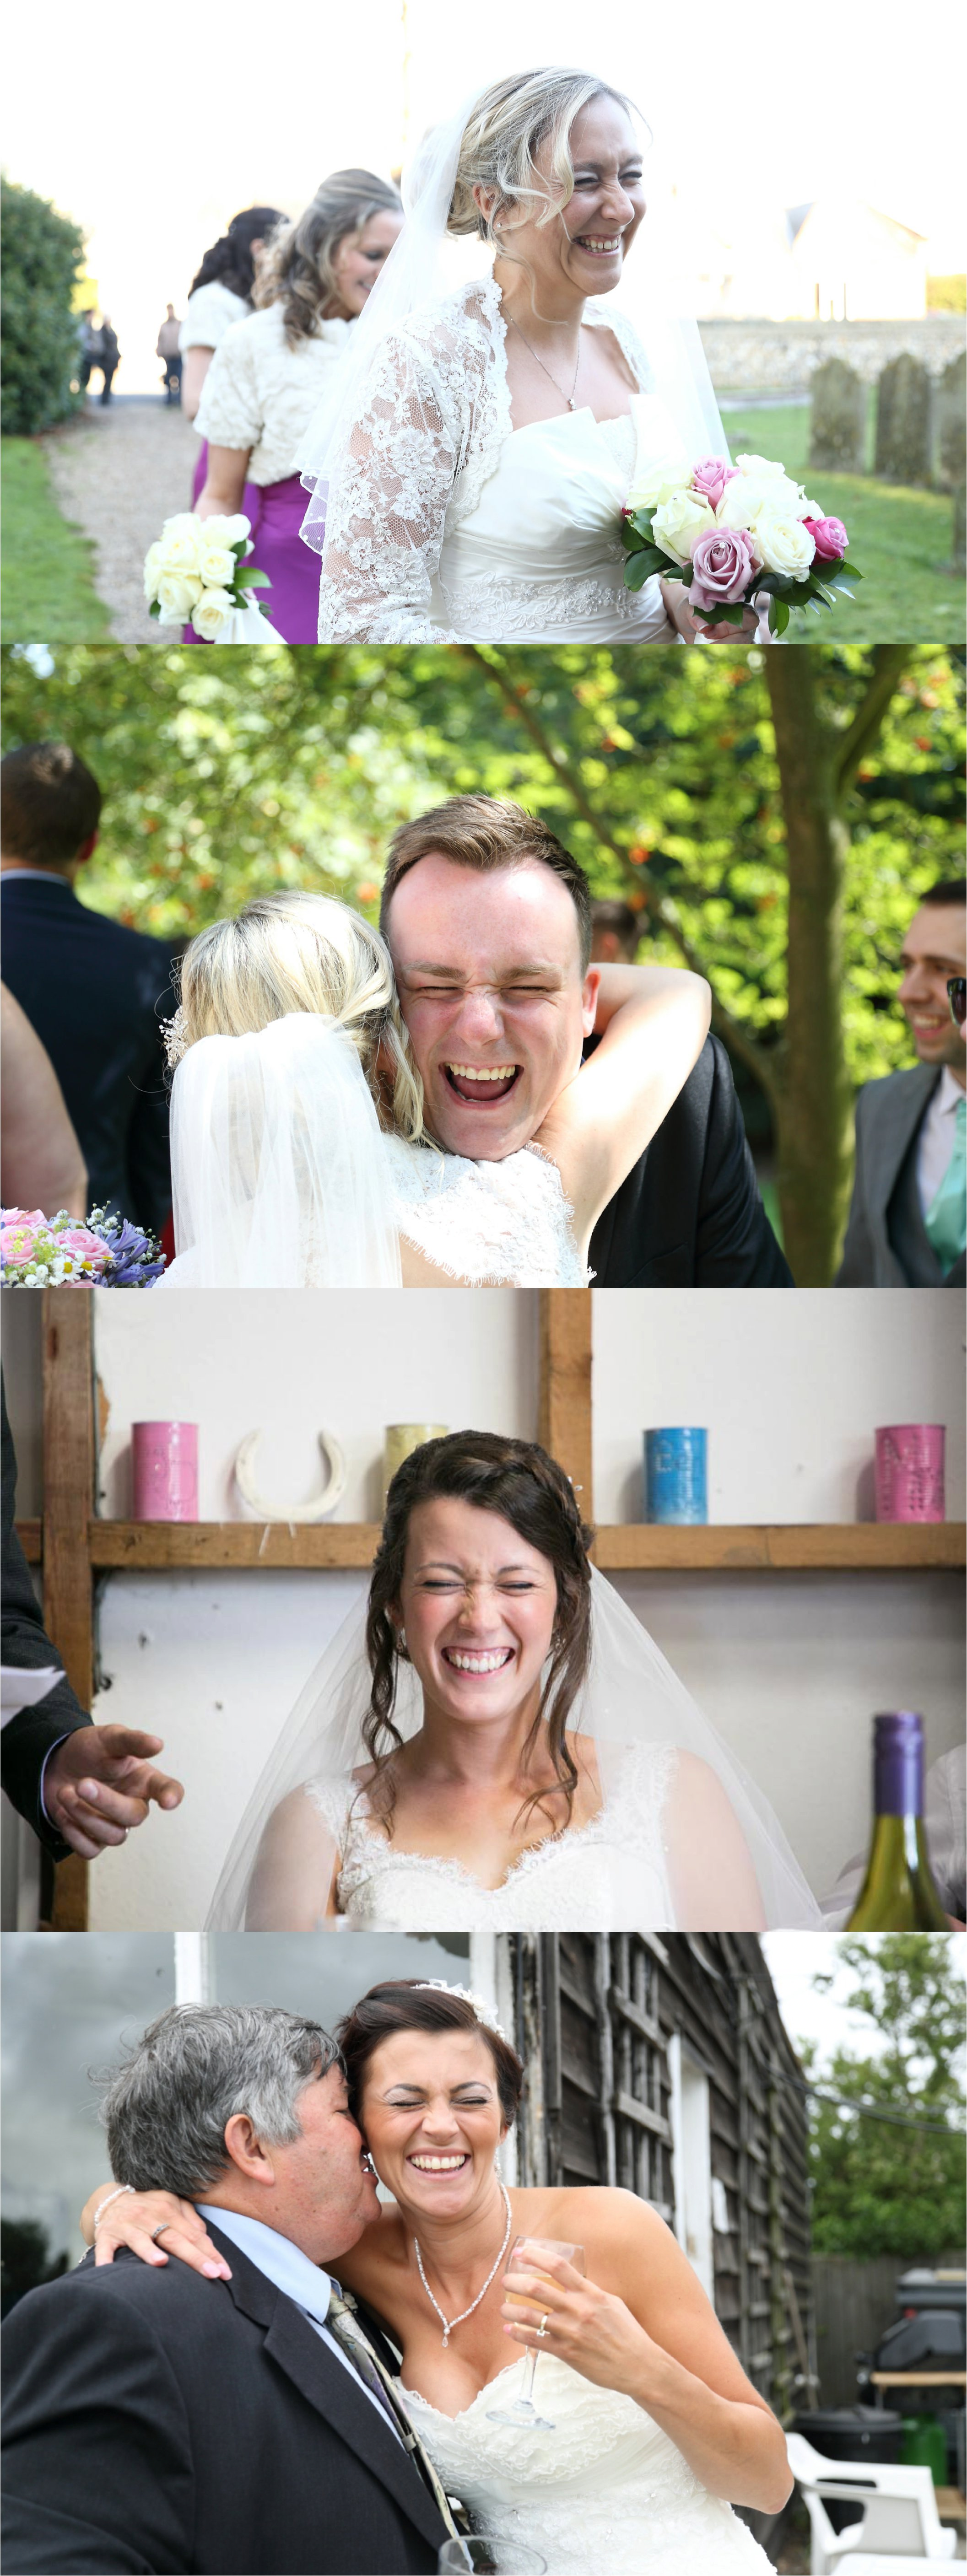 suffolk wedding photography capturing fun laughing expressions